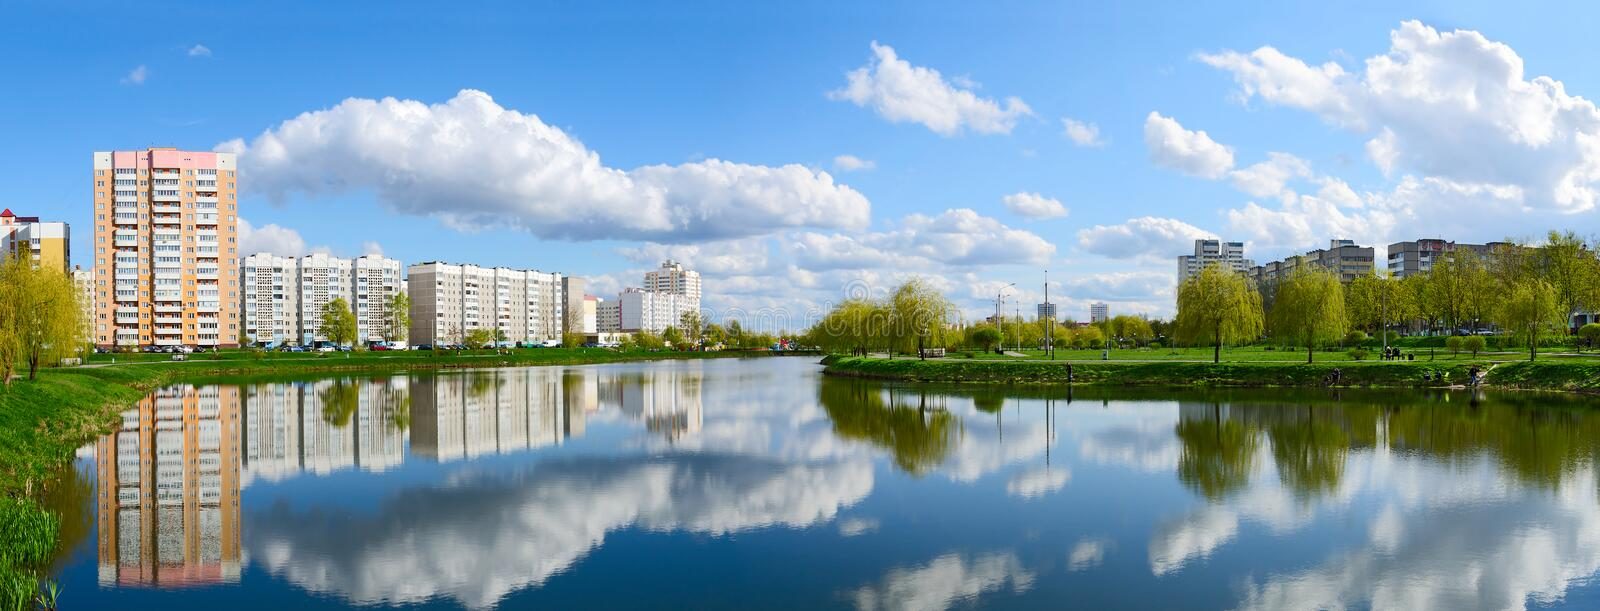 Residential buildings in recreation area with cascade of lakes, stock photo